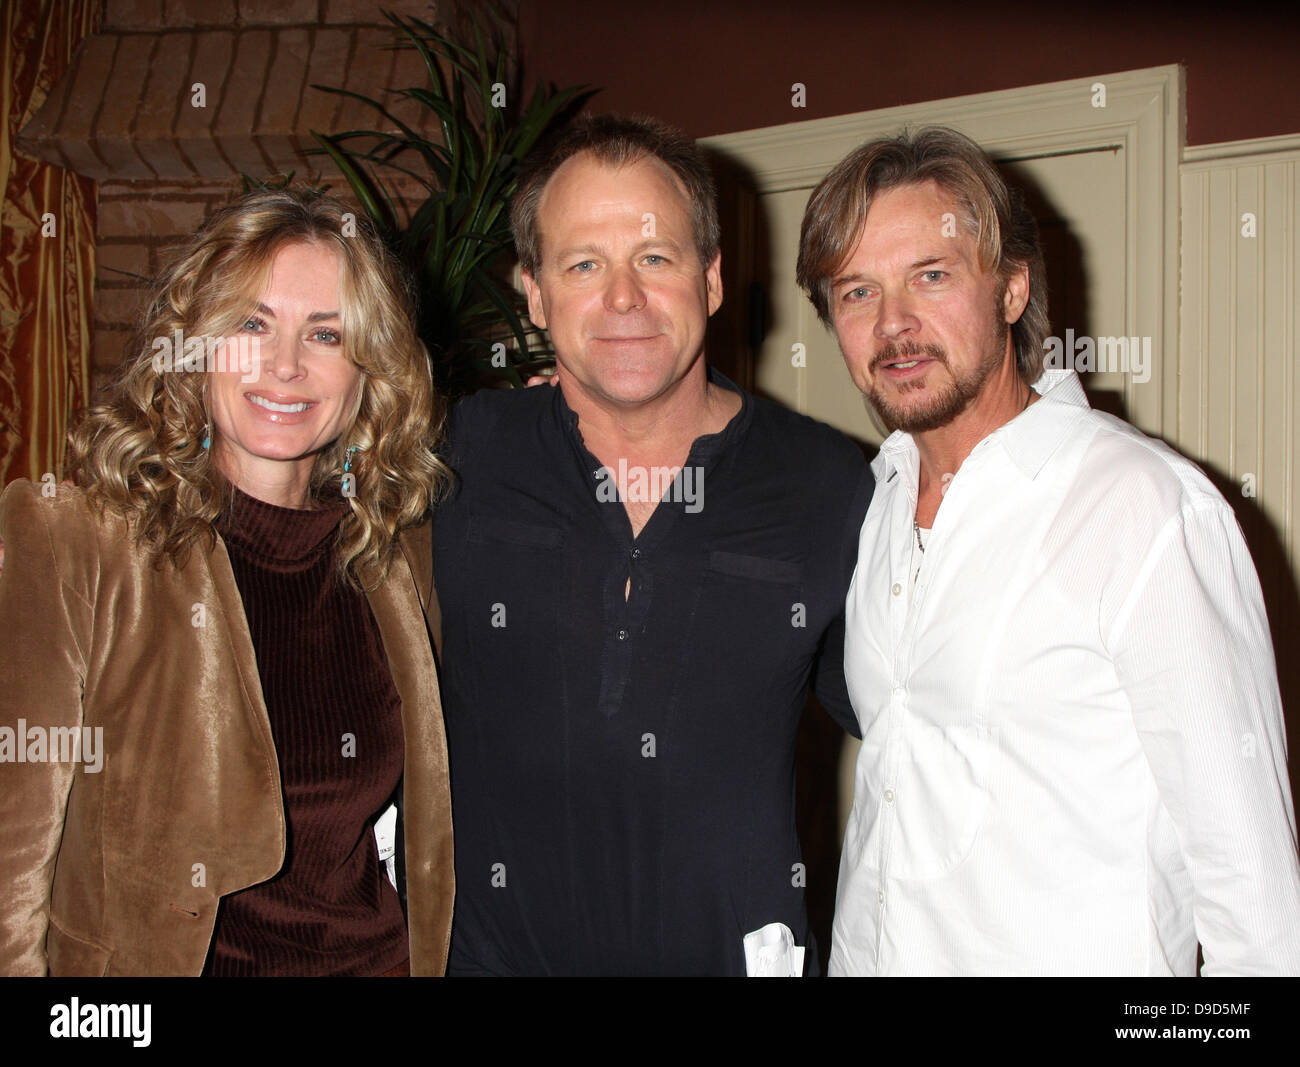 Eileen Davidson Kin Shriner And Stephen Nichols The Young Restless Stock Photo Alamy